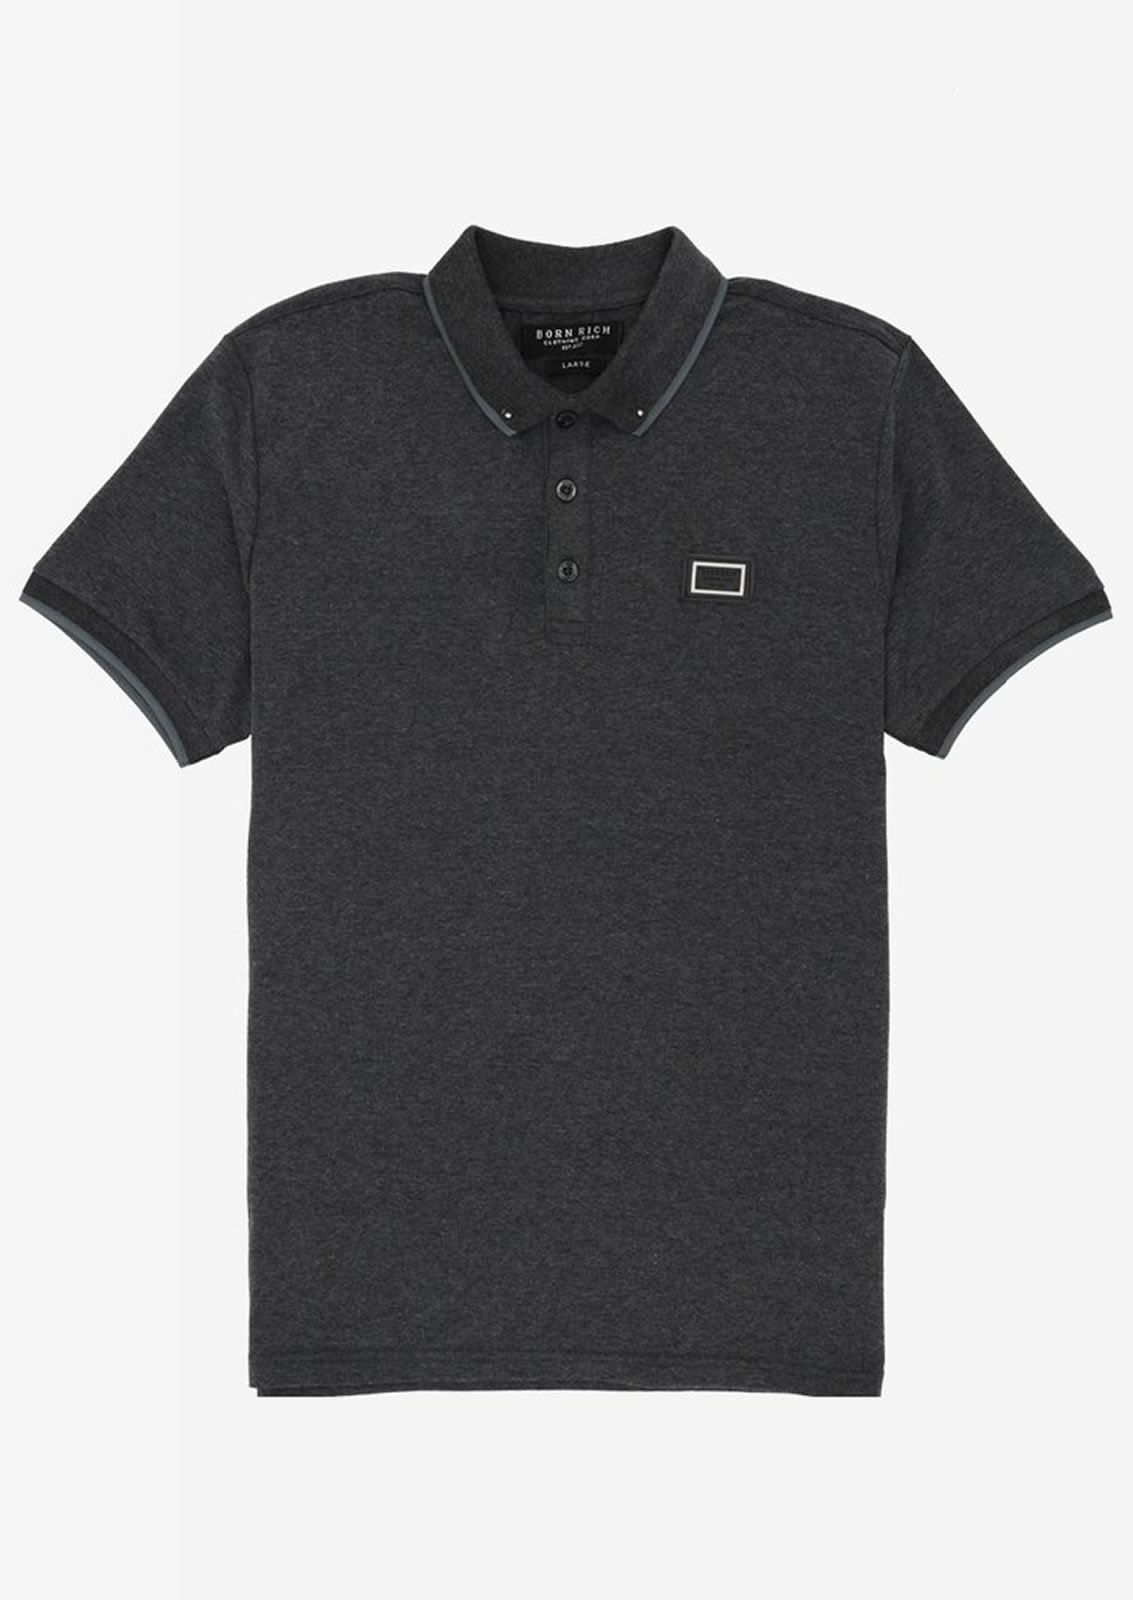 Ne-riche-par-l-039-argent-vetements-Iolite-Homme-Polo-T-Shirt-Cloute-Col-Haut-Decontracte miniature 4